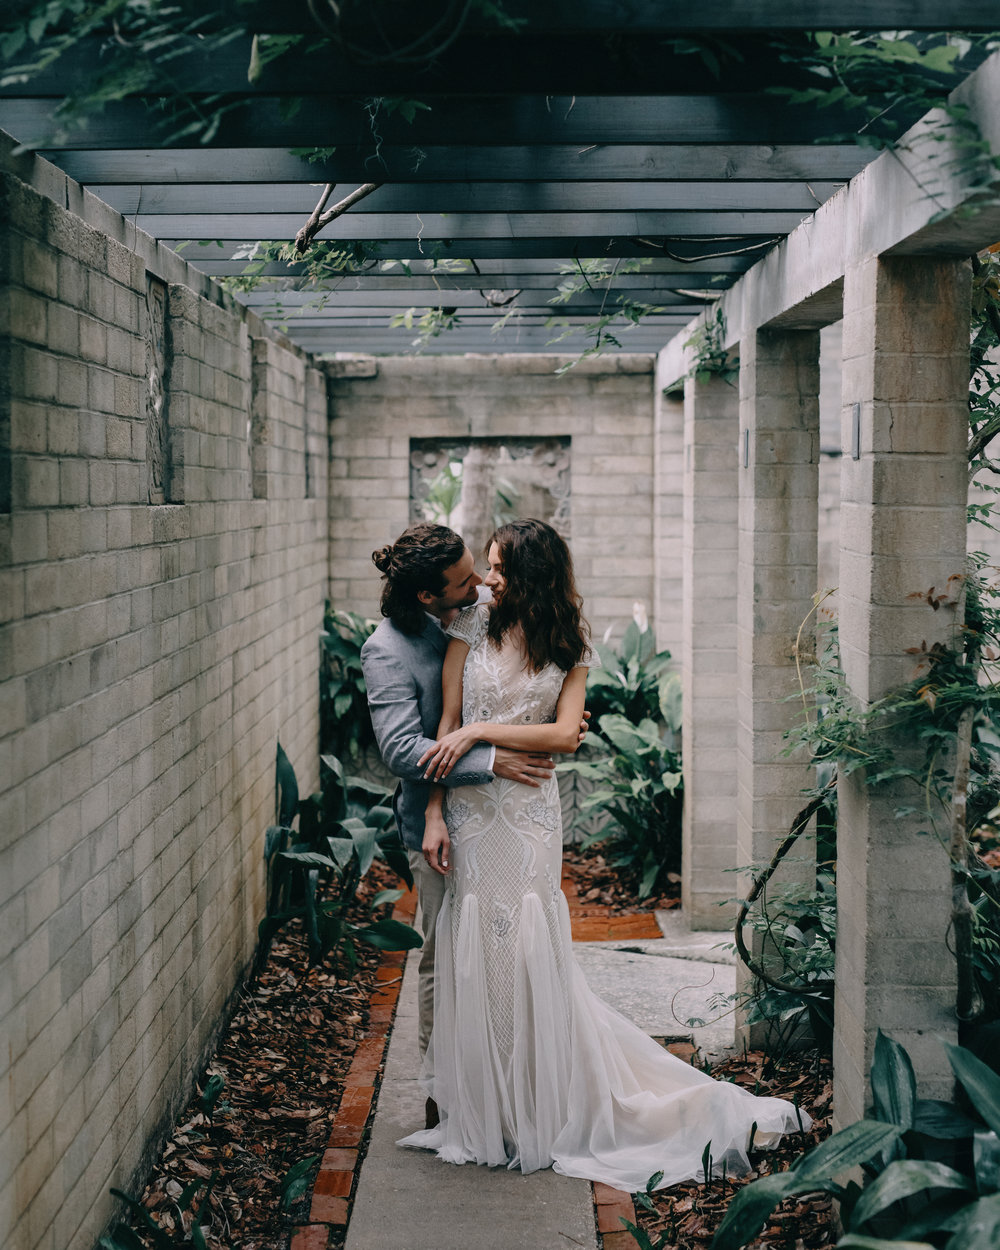 HOW TO: - FIND THE PERFECT WEDDING PHOTOGRAPHER